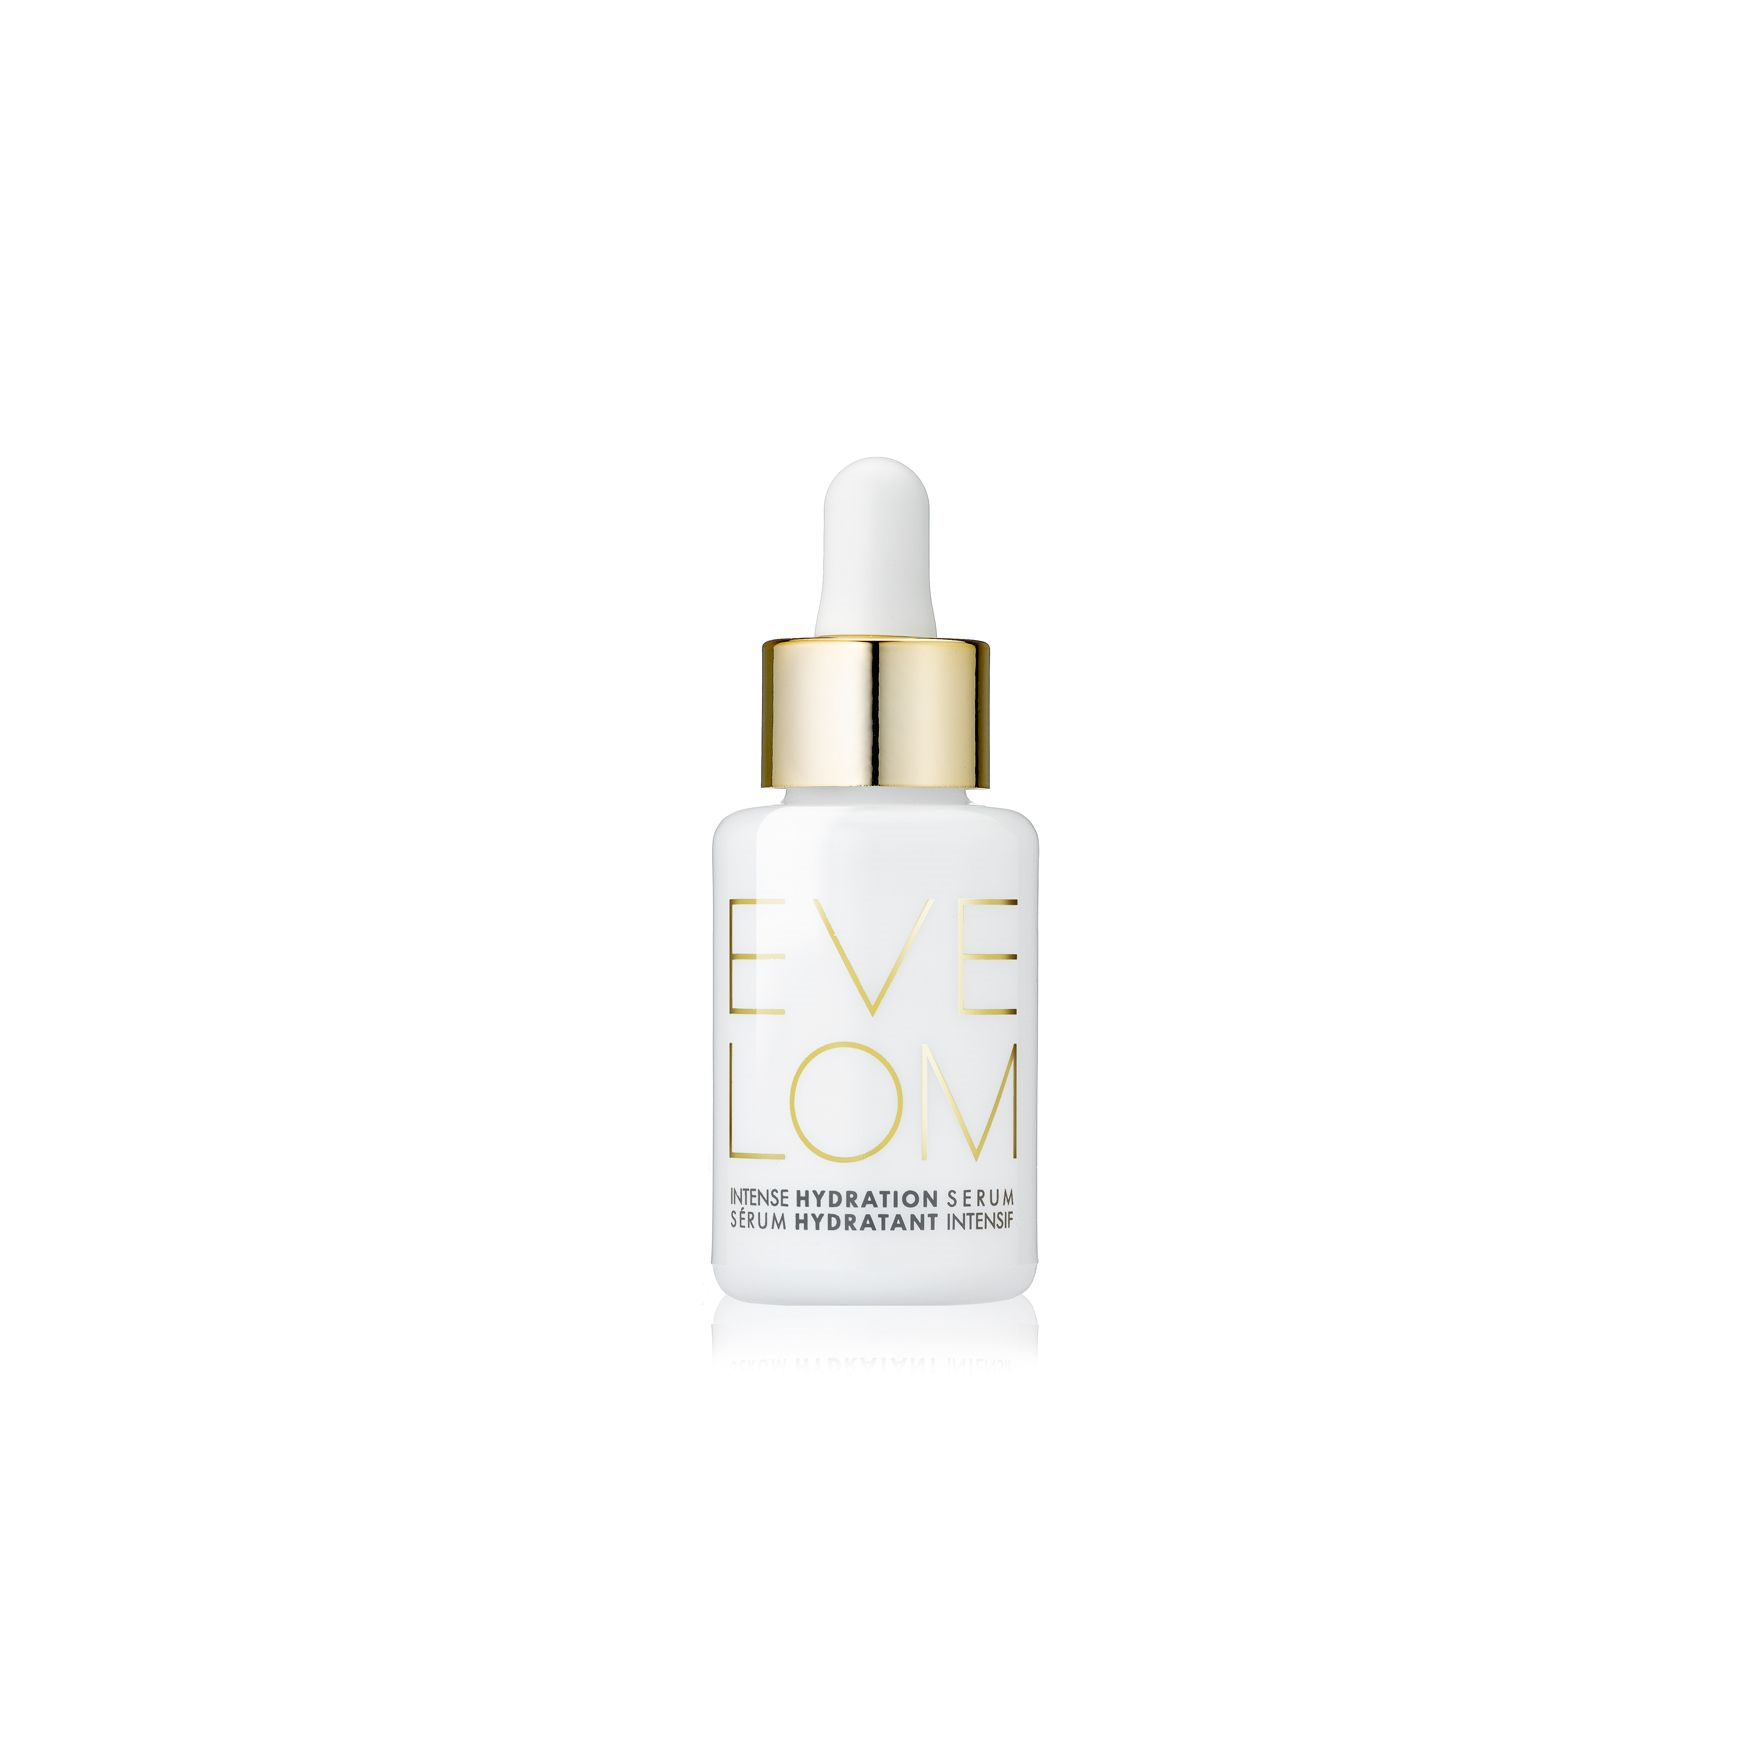 Eve Lom Intense Hydration Serum 1.0oz 30 ml